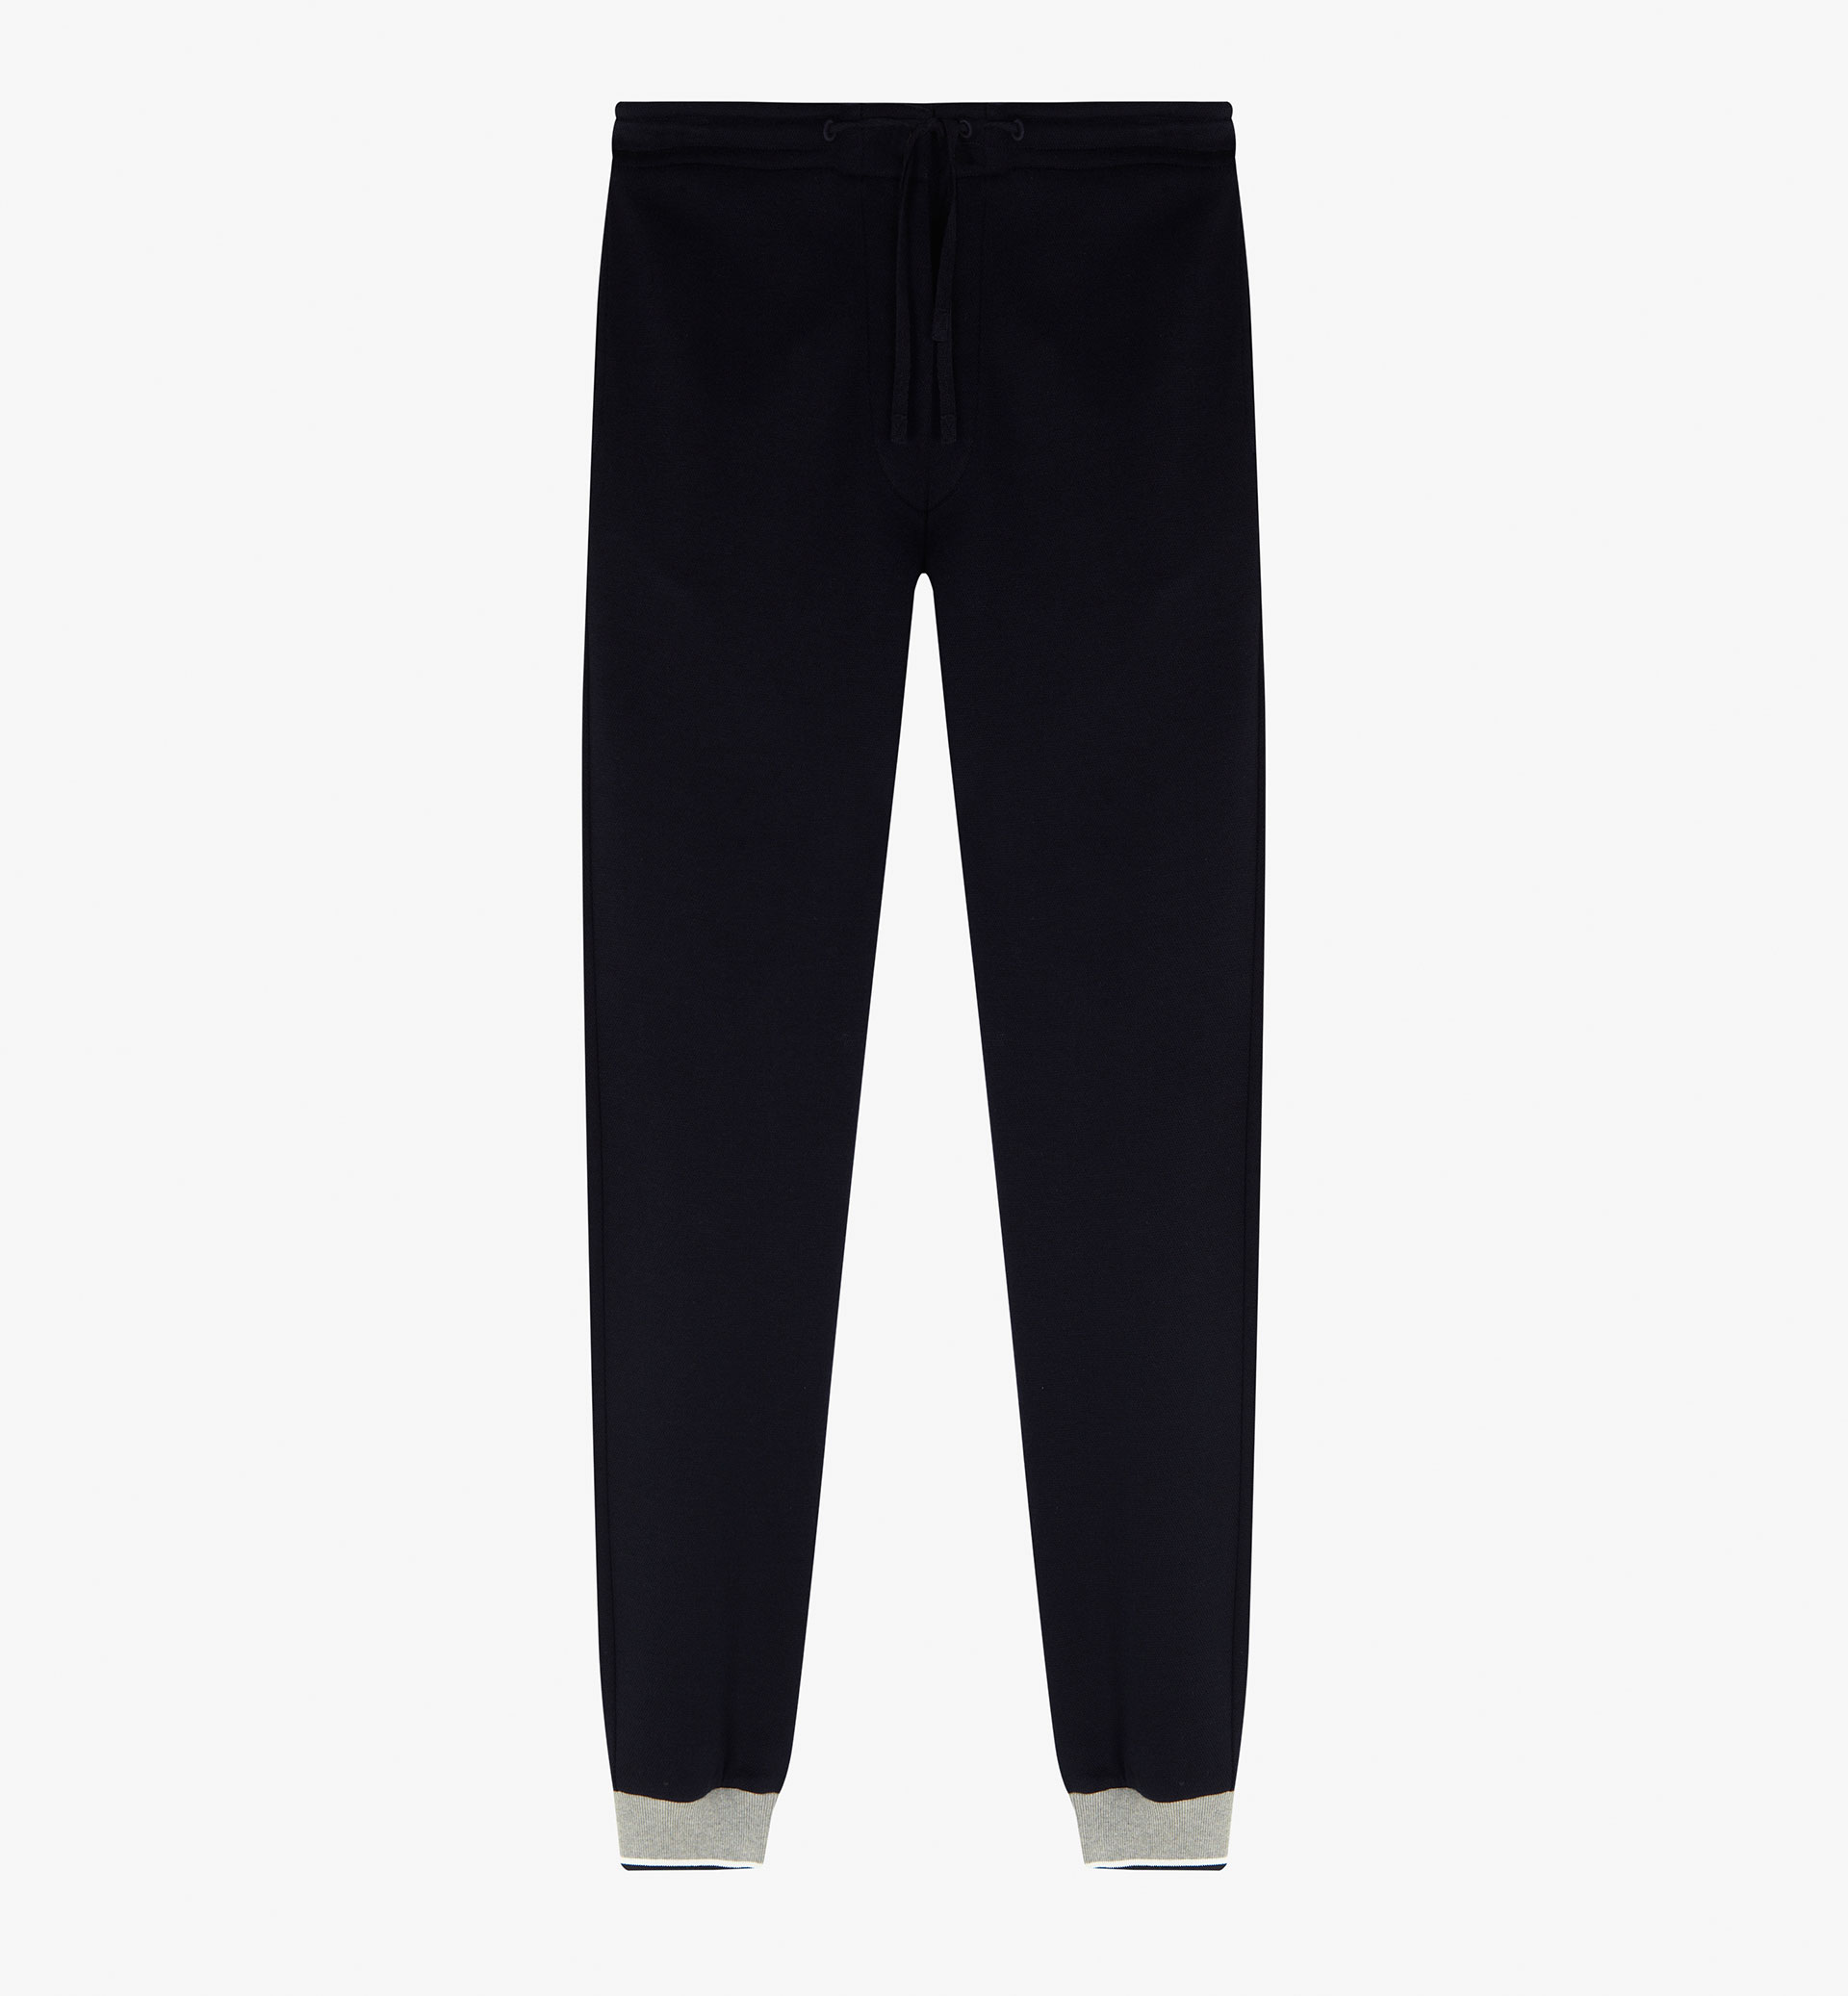 SOFT TROUSERS WITH A CONTRASTING HEM DETAIL